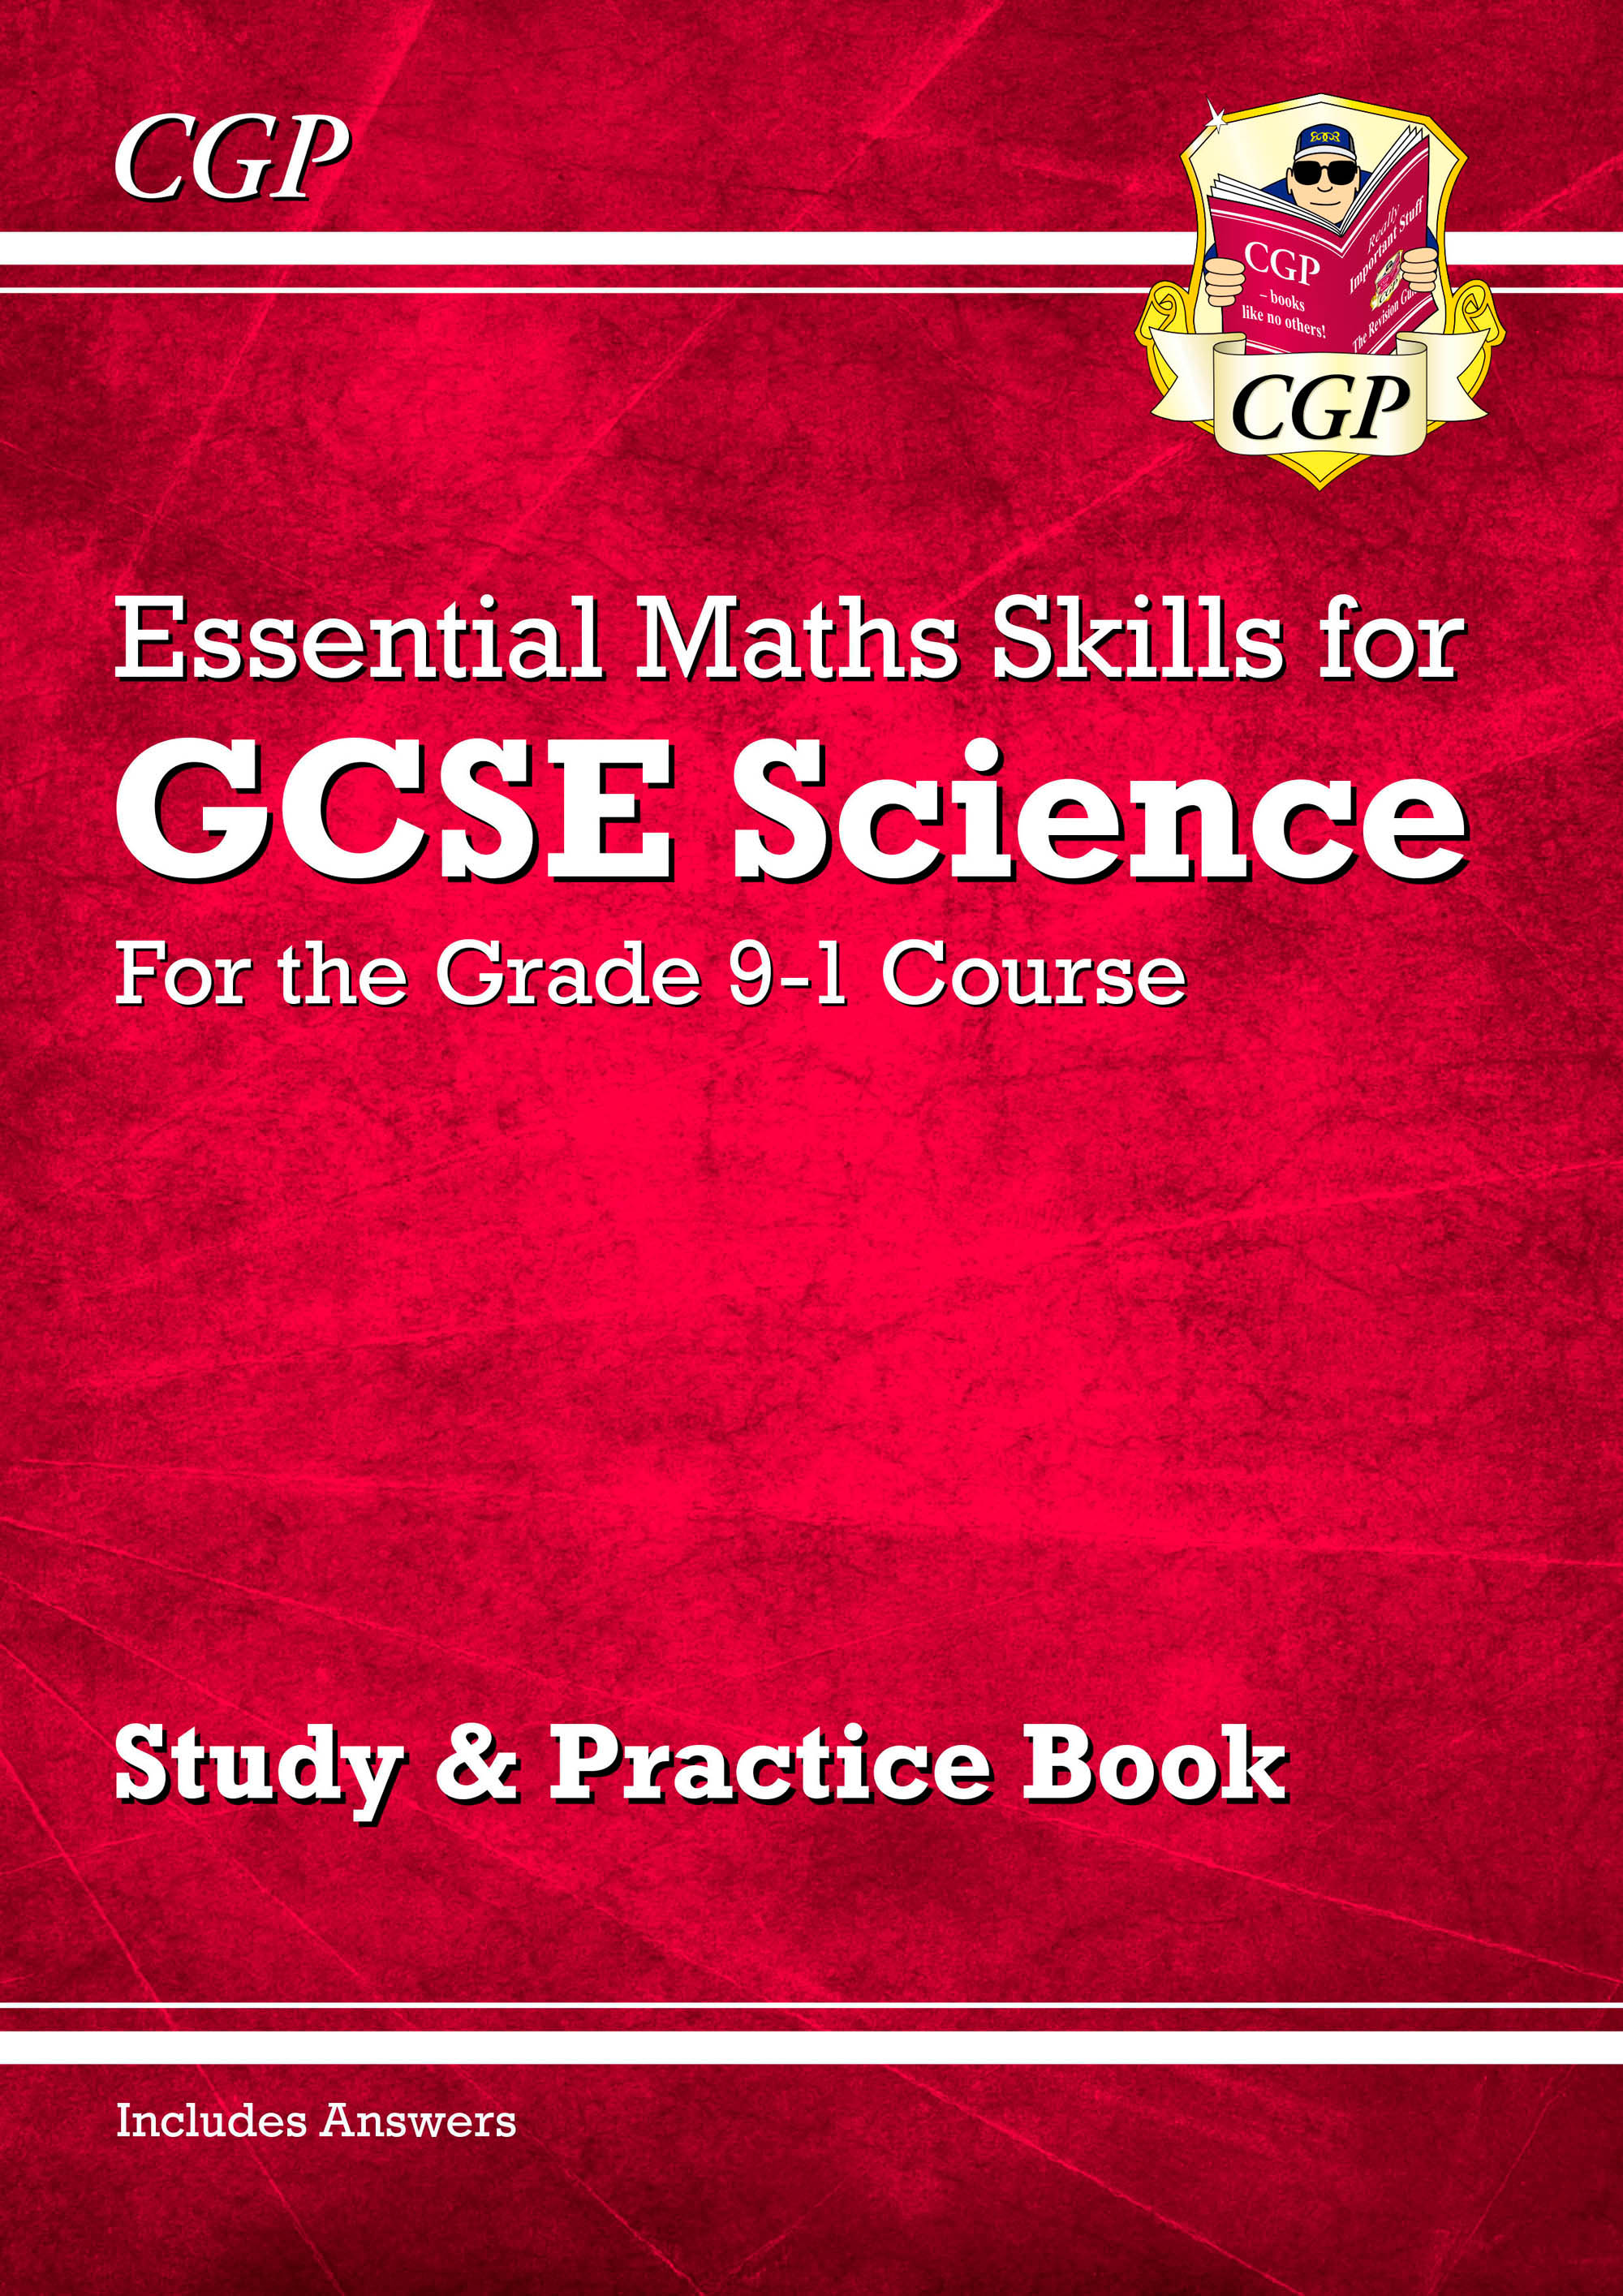 SMR42DK - New Grade 9-1 GCSE Science: Essential Maths Skills - Study & Practice